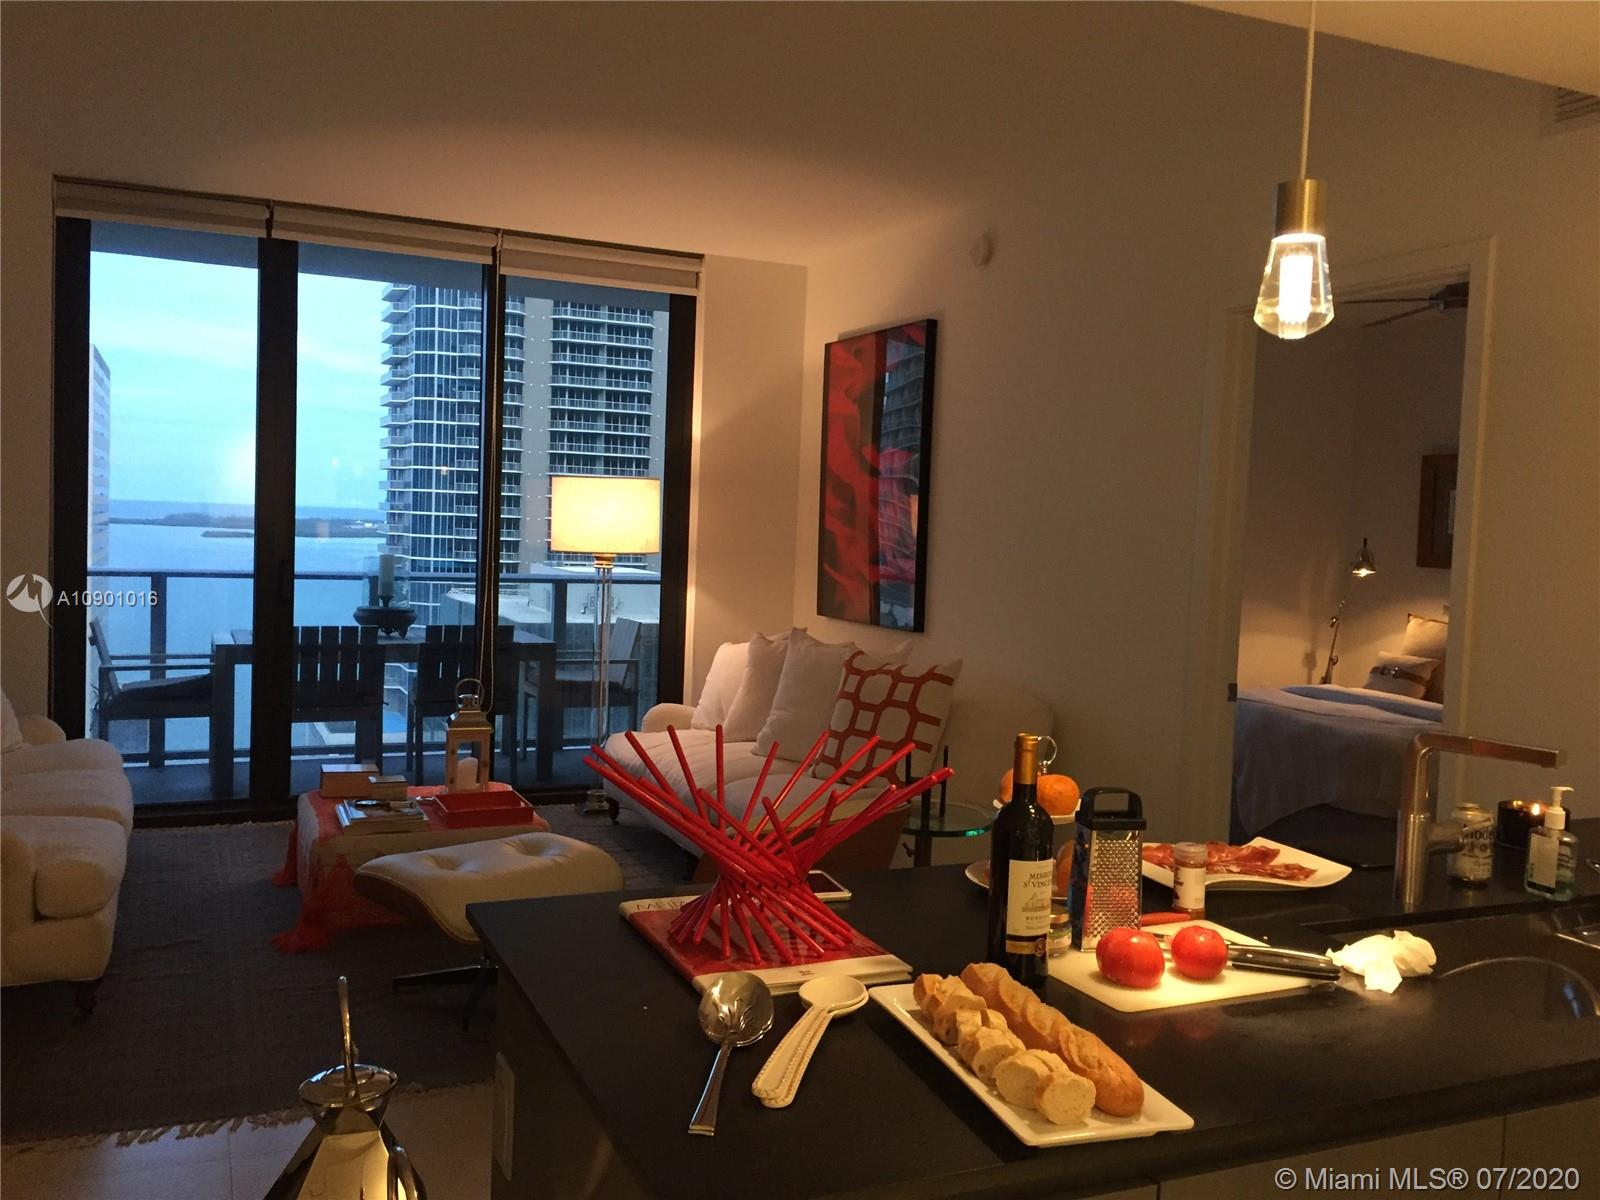 ENJOY A BAY VIEW FROM THIS 2BED + DEN/ 3 BATHS ON BRICKELL AVENUE. BEST AMENITIES AND LOCATION. PRIVATE ELEVATOR AND PET FRIENDLY CONDOMINIUM. TENANT OCCUPIED.